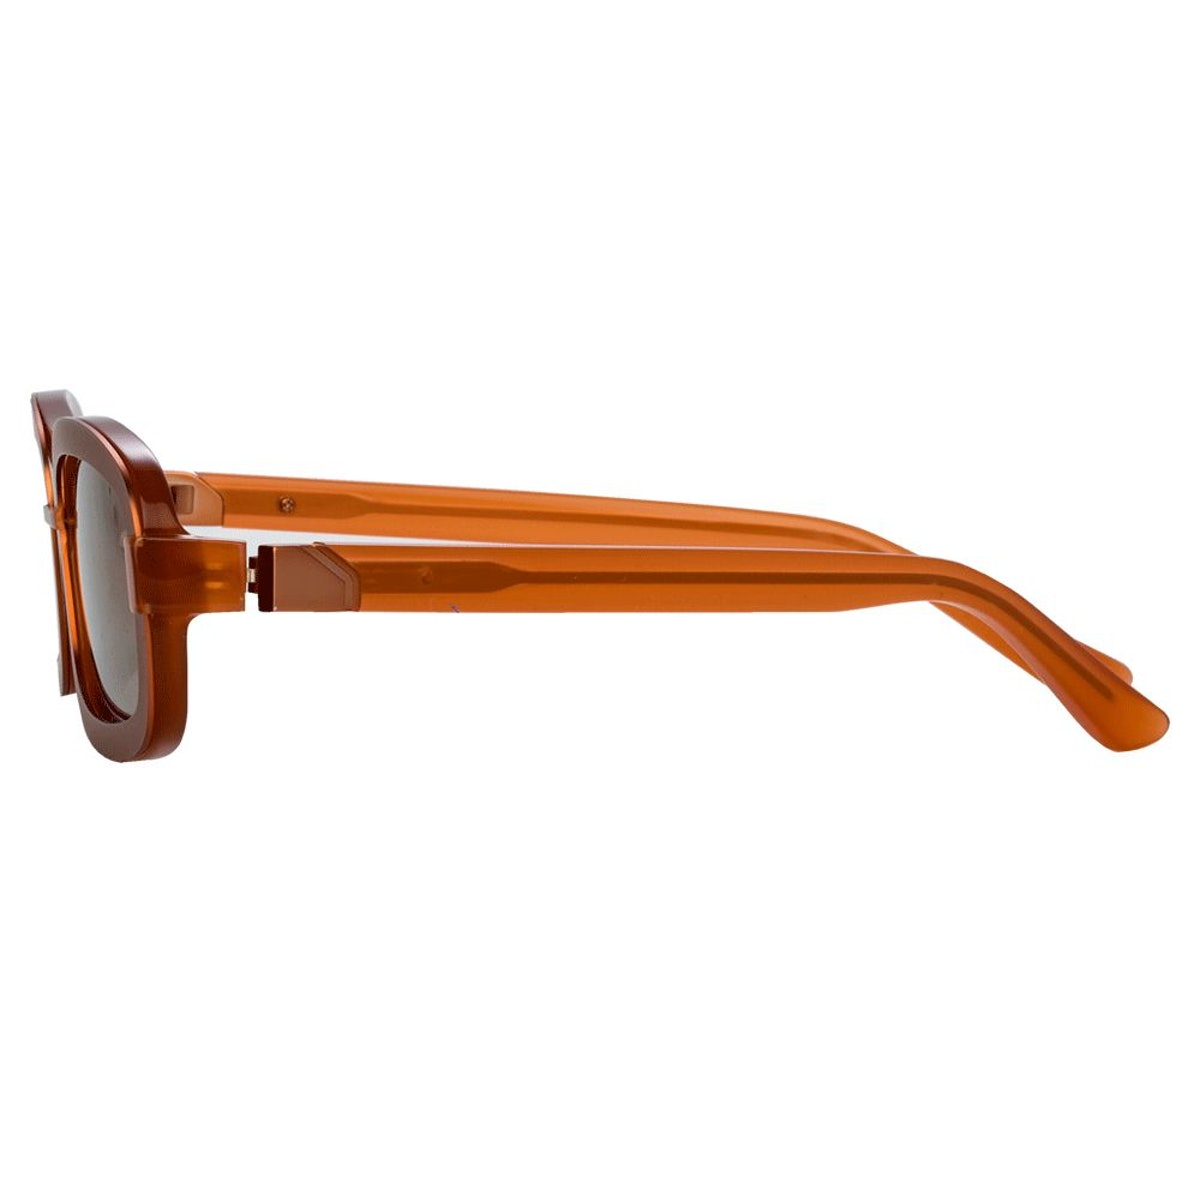 Y/Project 6 Rectangular Sunglasses in Brown: additional image